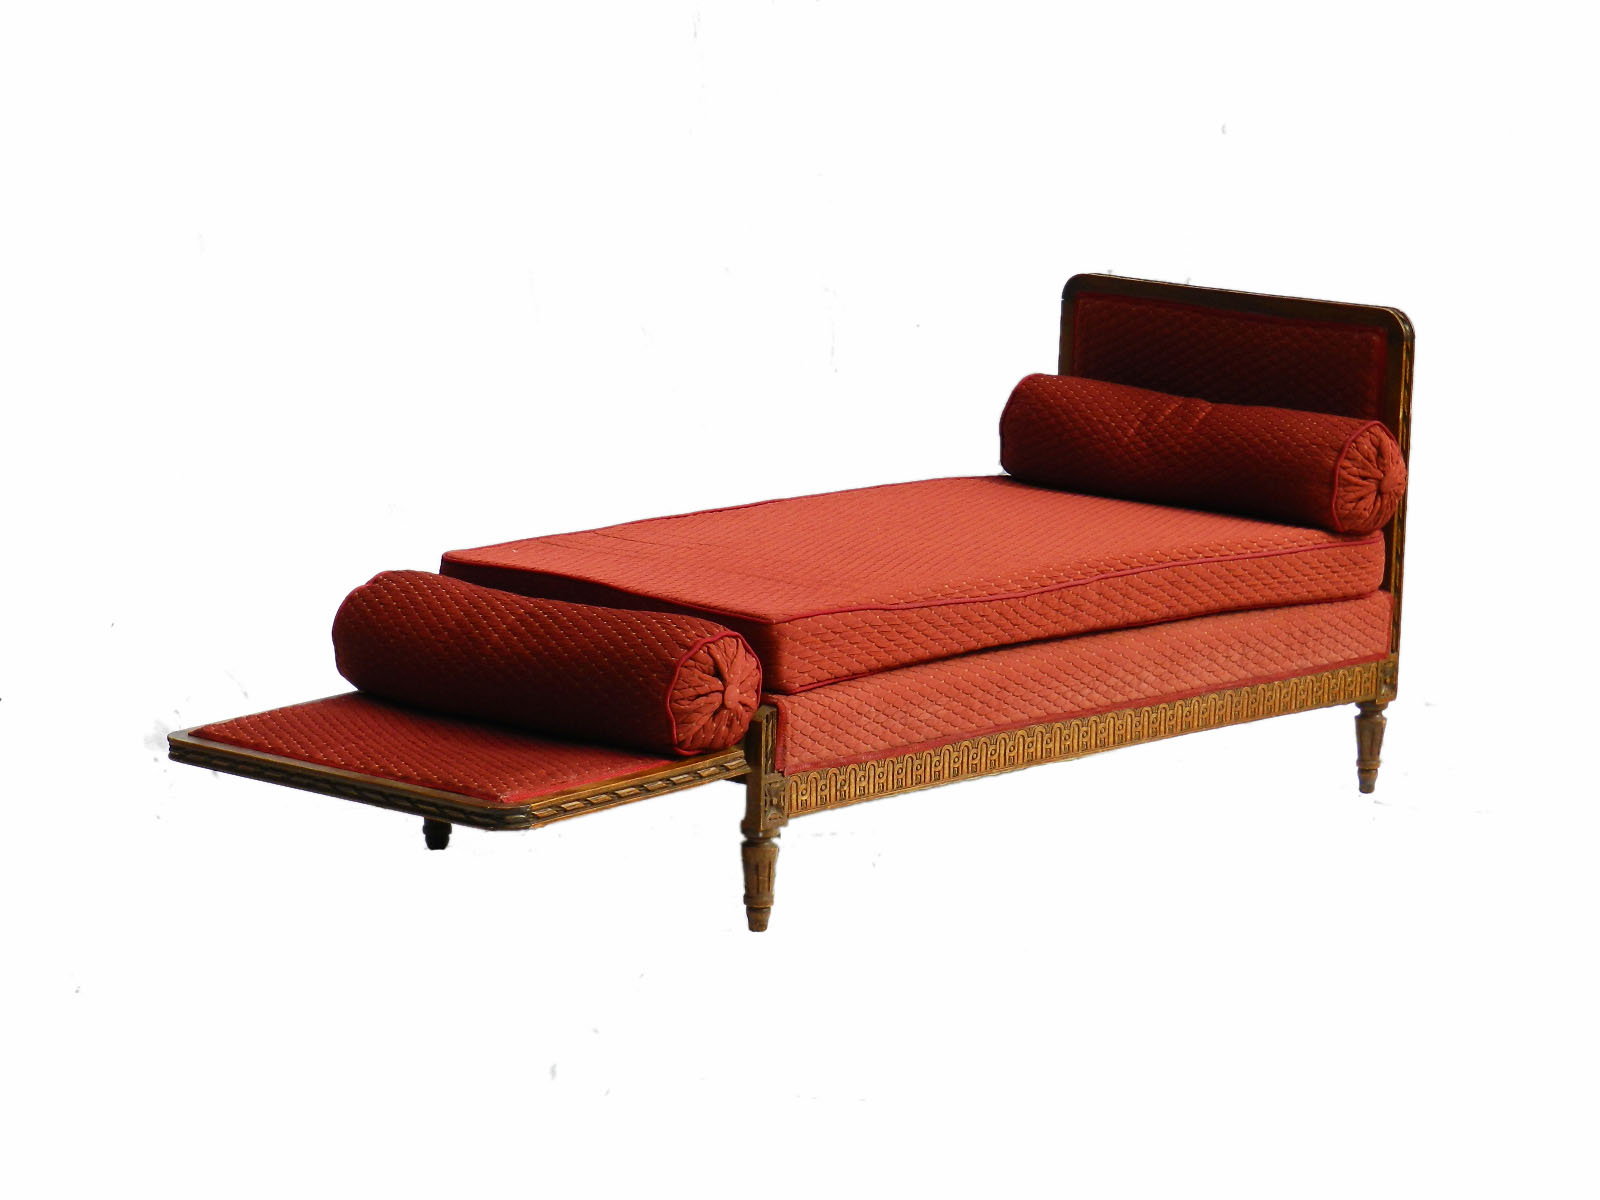 French daybed sofa drop end chaise longue decorative for Chaise longue sofas